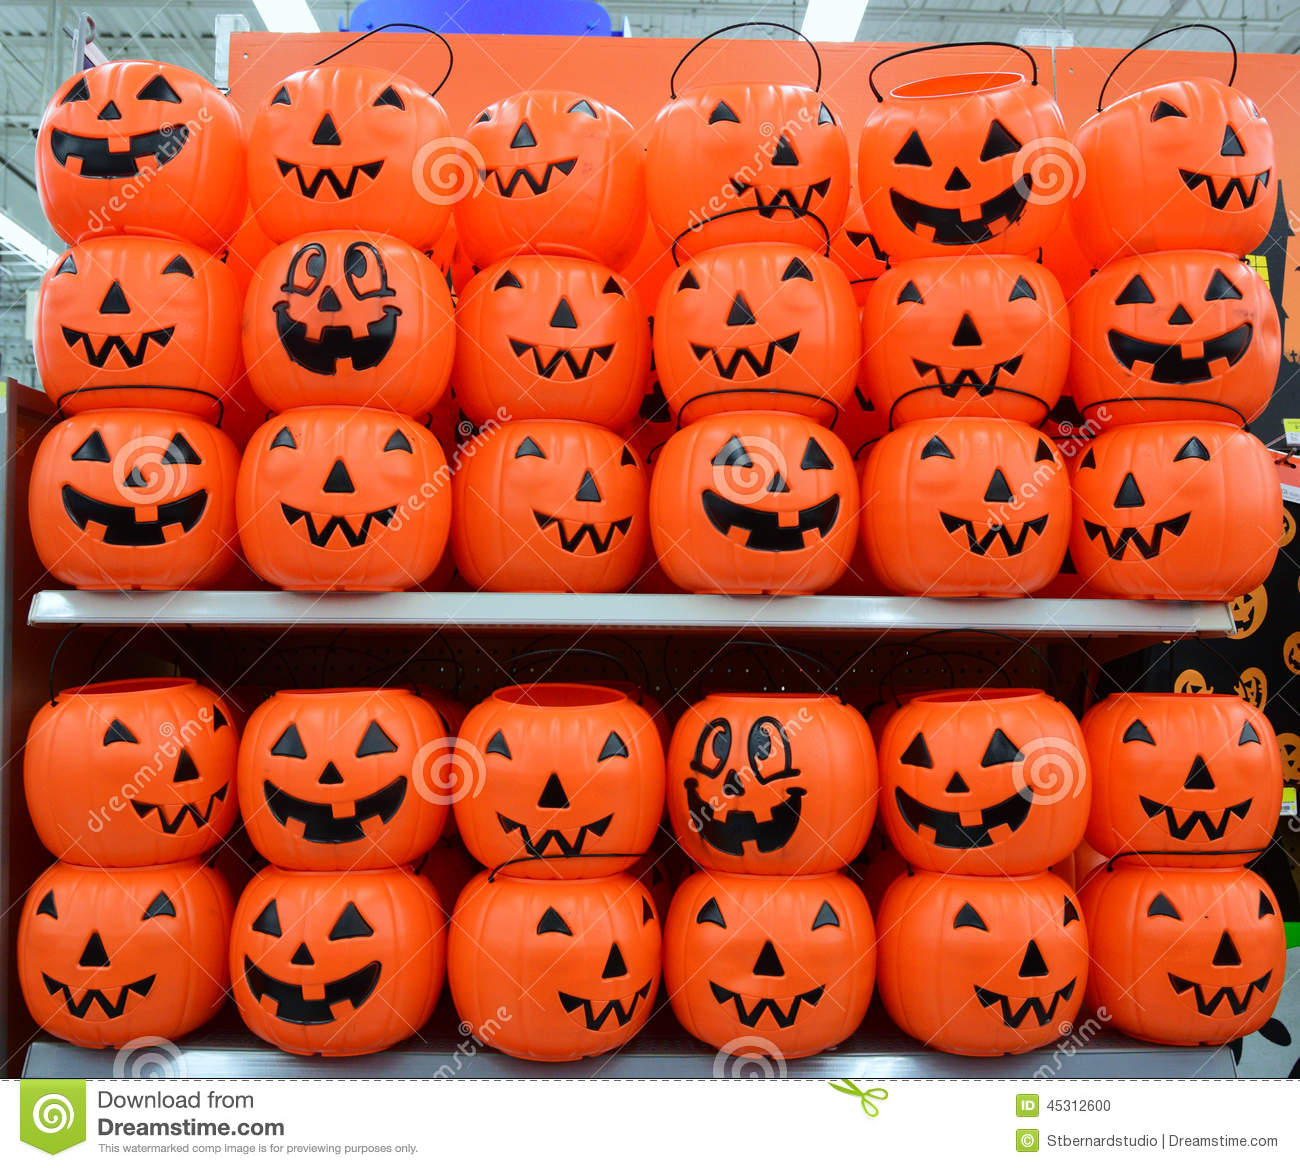 annually around basket common halloween october plastic pumpkins - Plastic Pumpkins